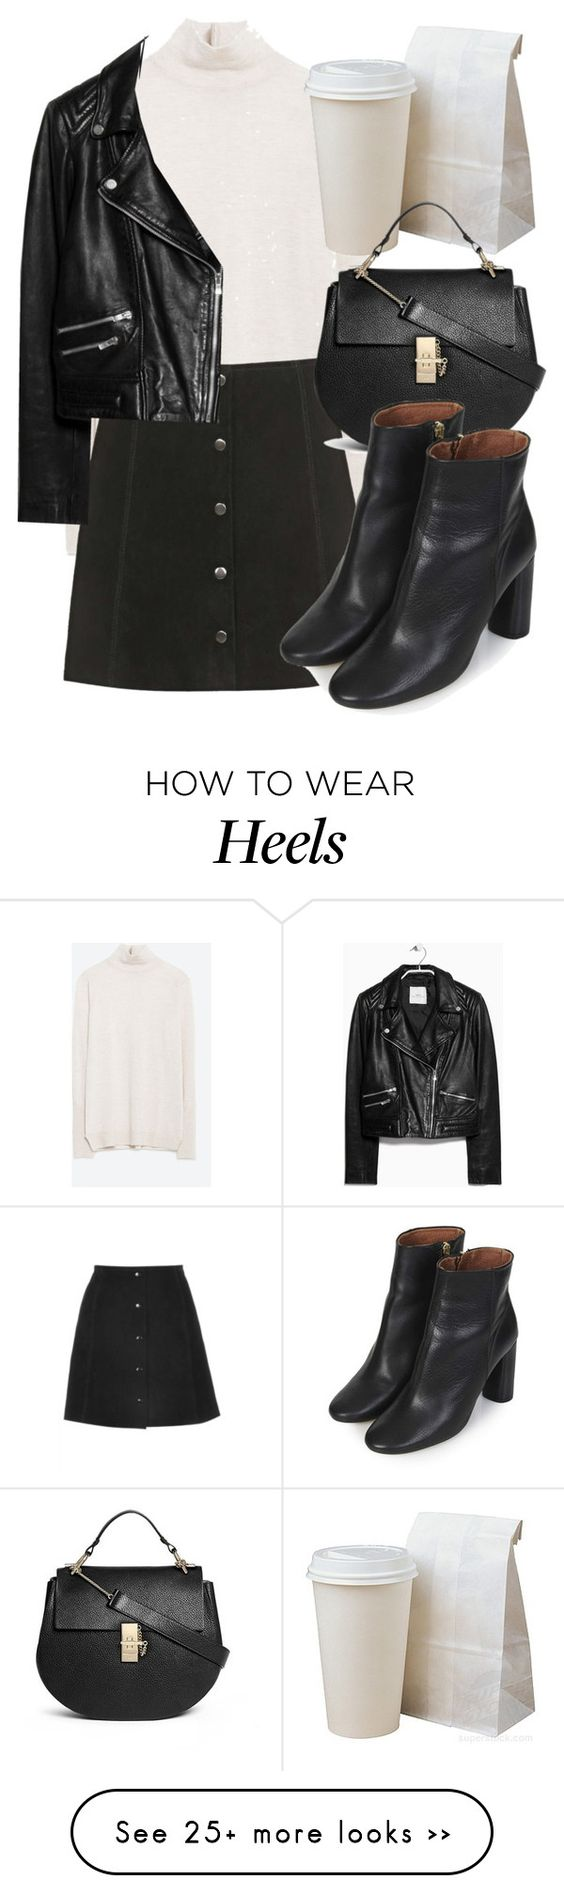 """""""Untitled #4415"""" by laurenmboot on Polyvore featuring Zara, Topshop, MANGO and Chloé"""